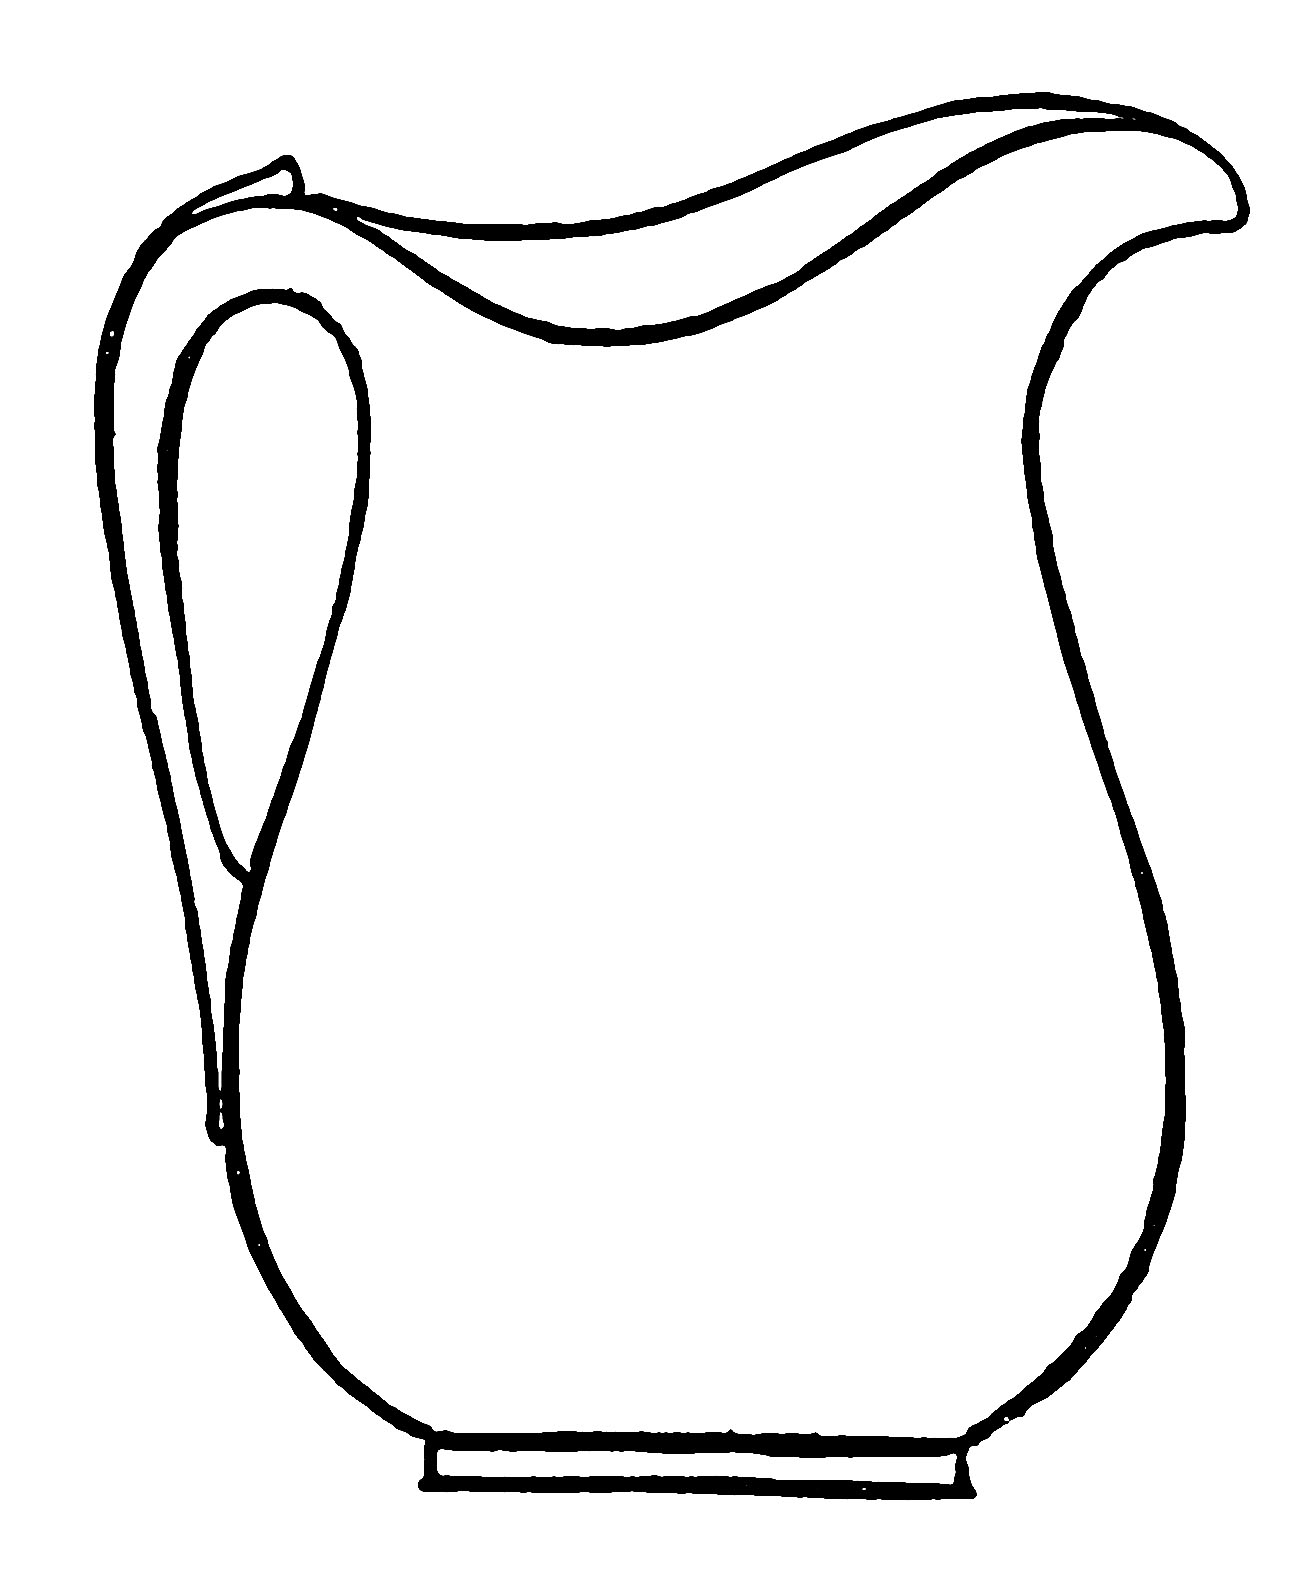 Jug Outline Image Clipart Best Outline Pictures For Coloring